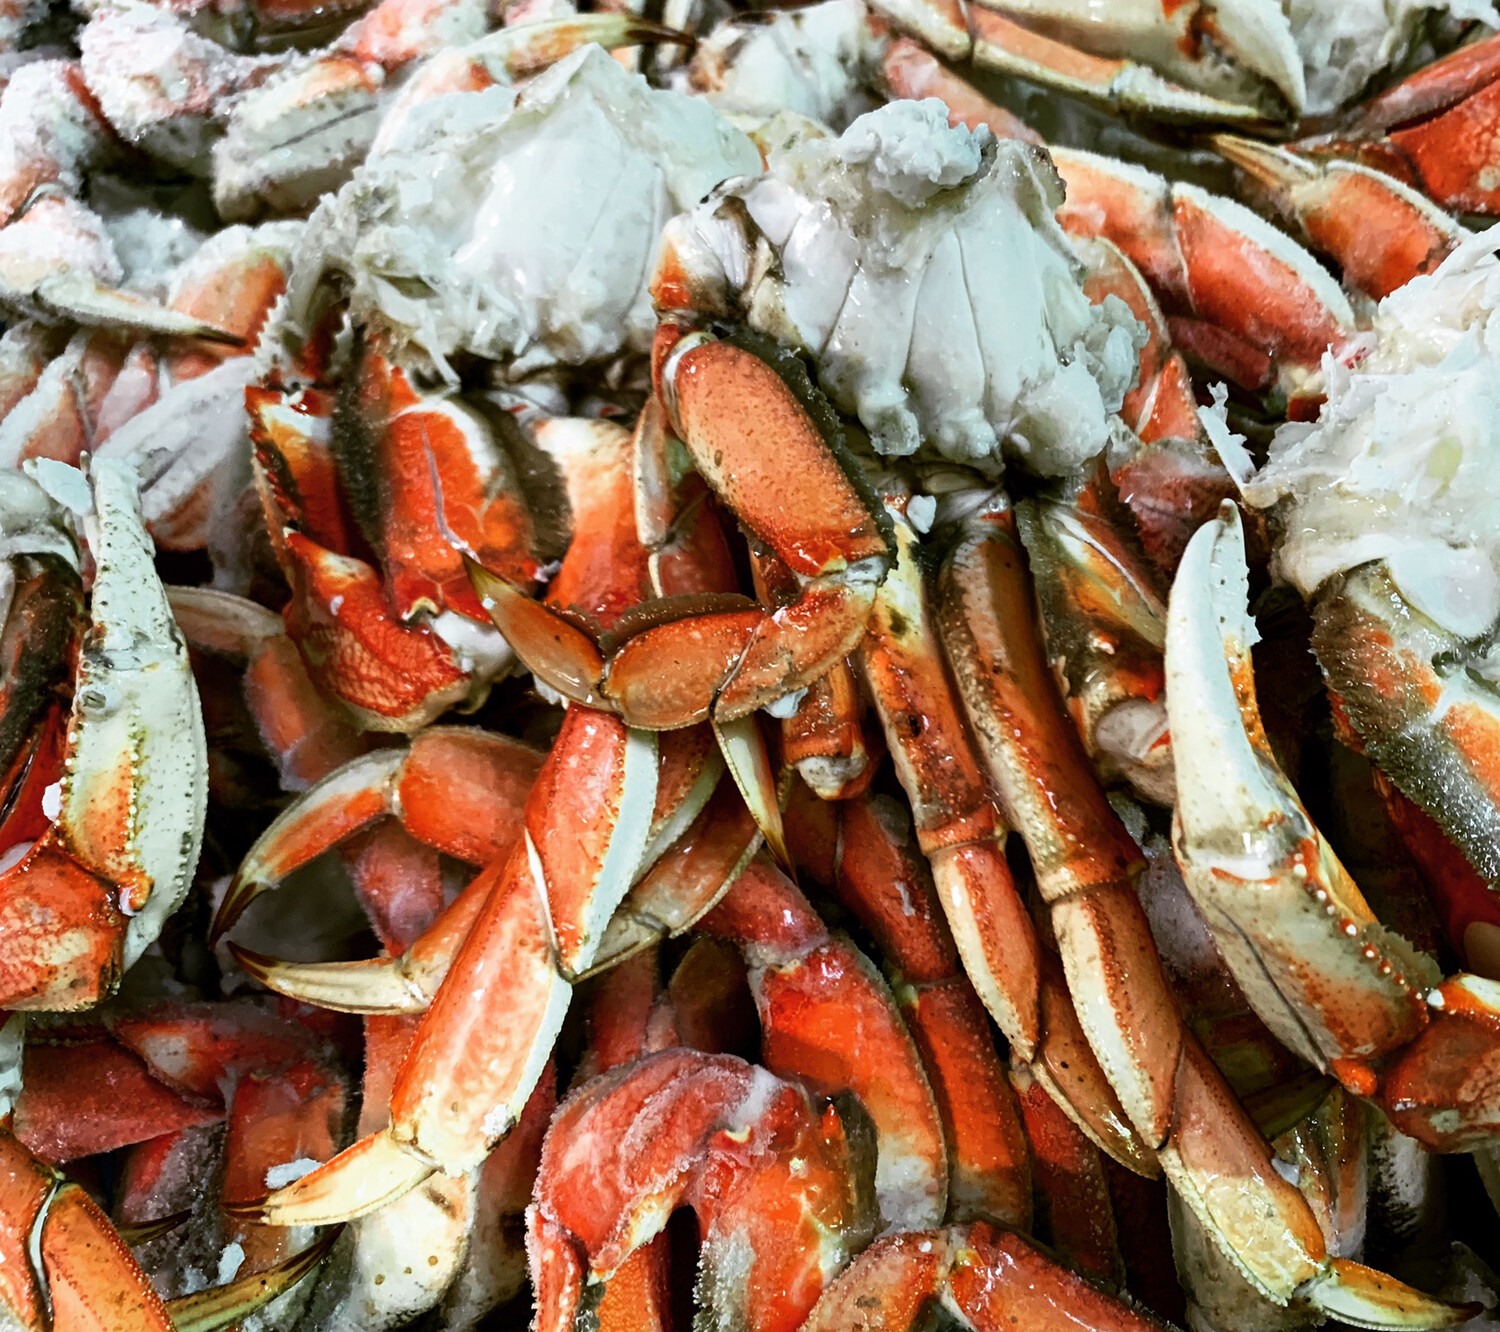 DUNGENESS CRAB CLUSTERS 2.5 Pounds Bag